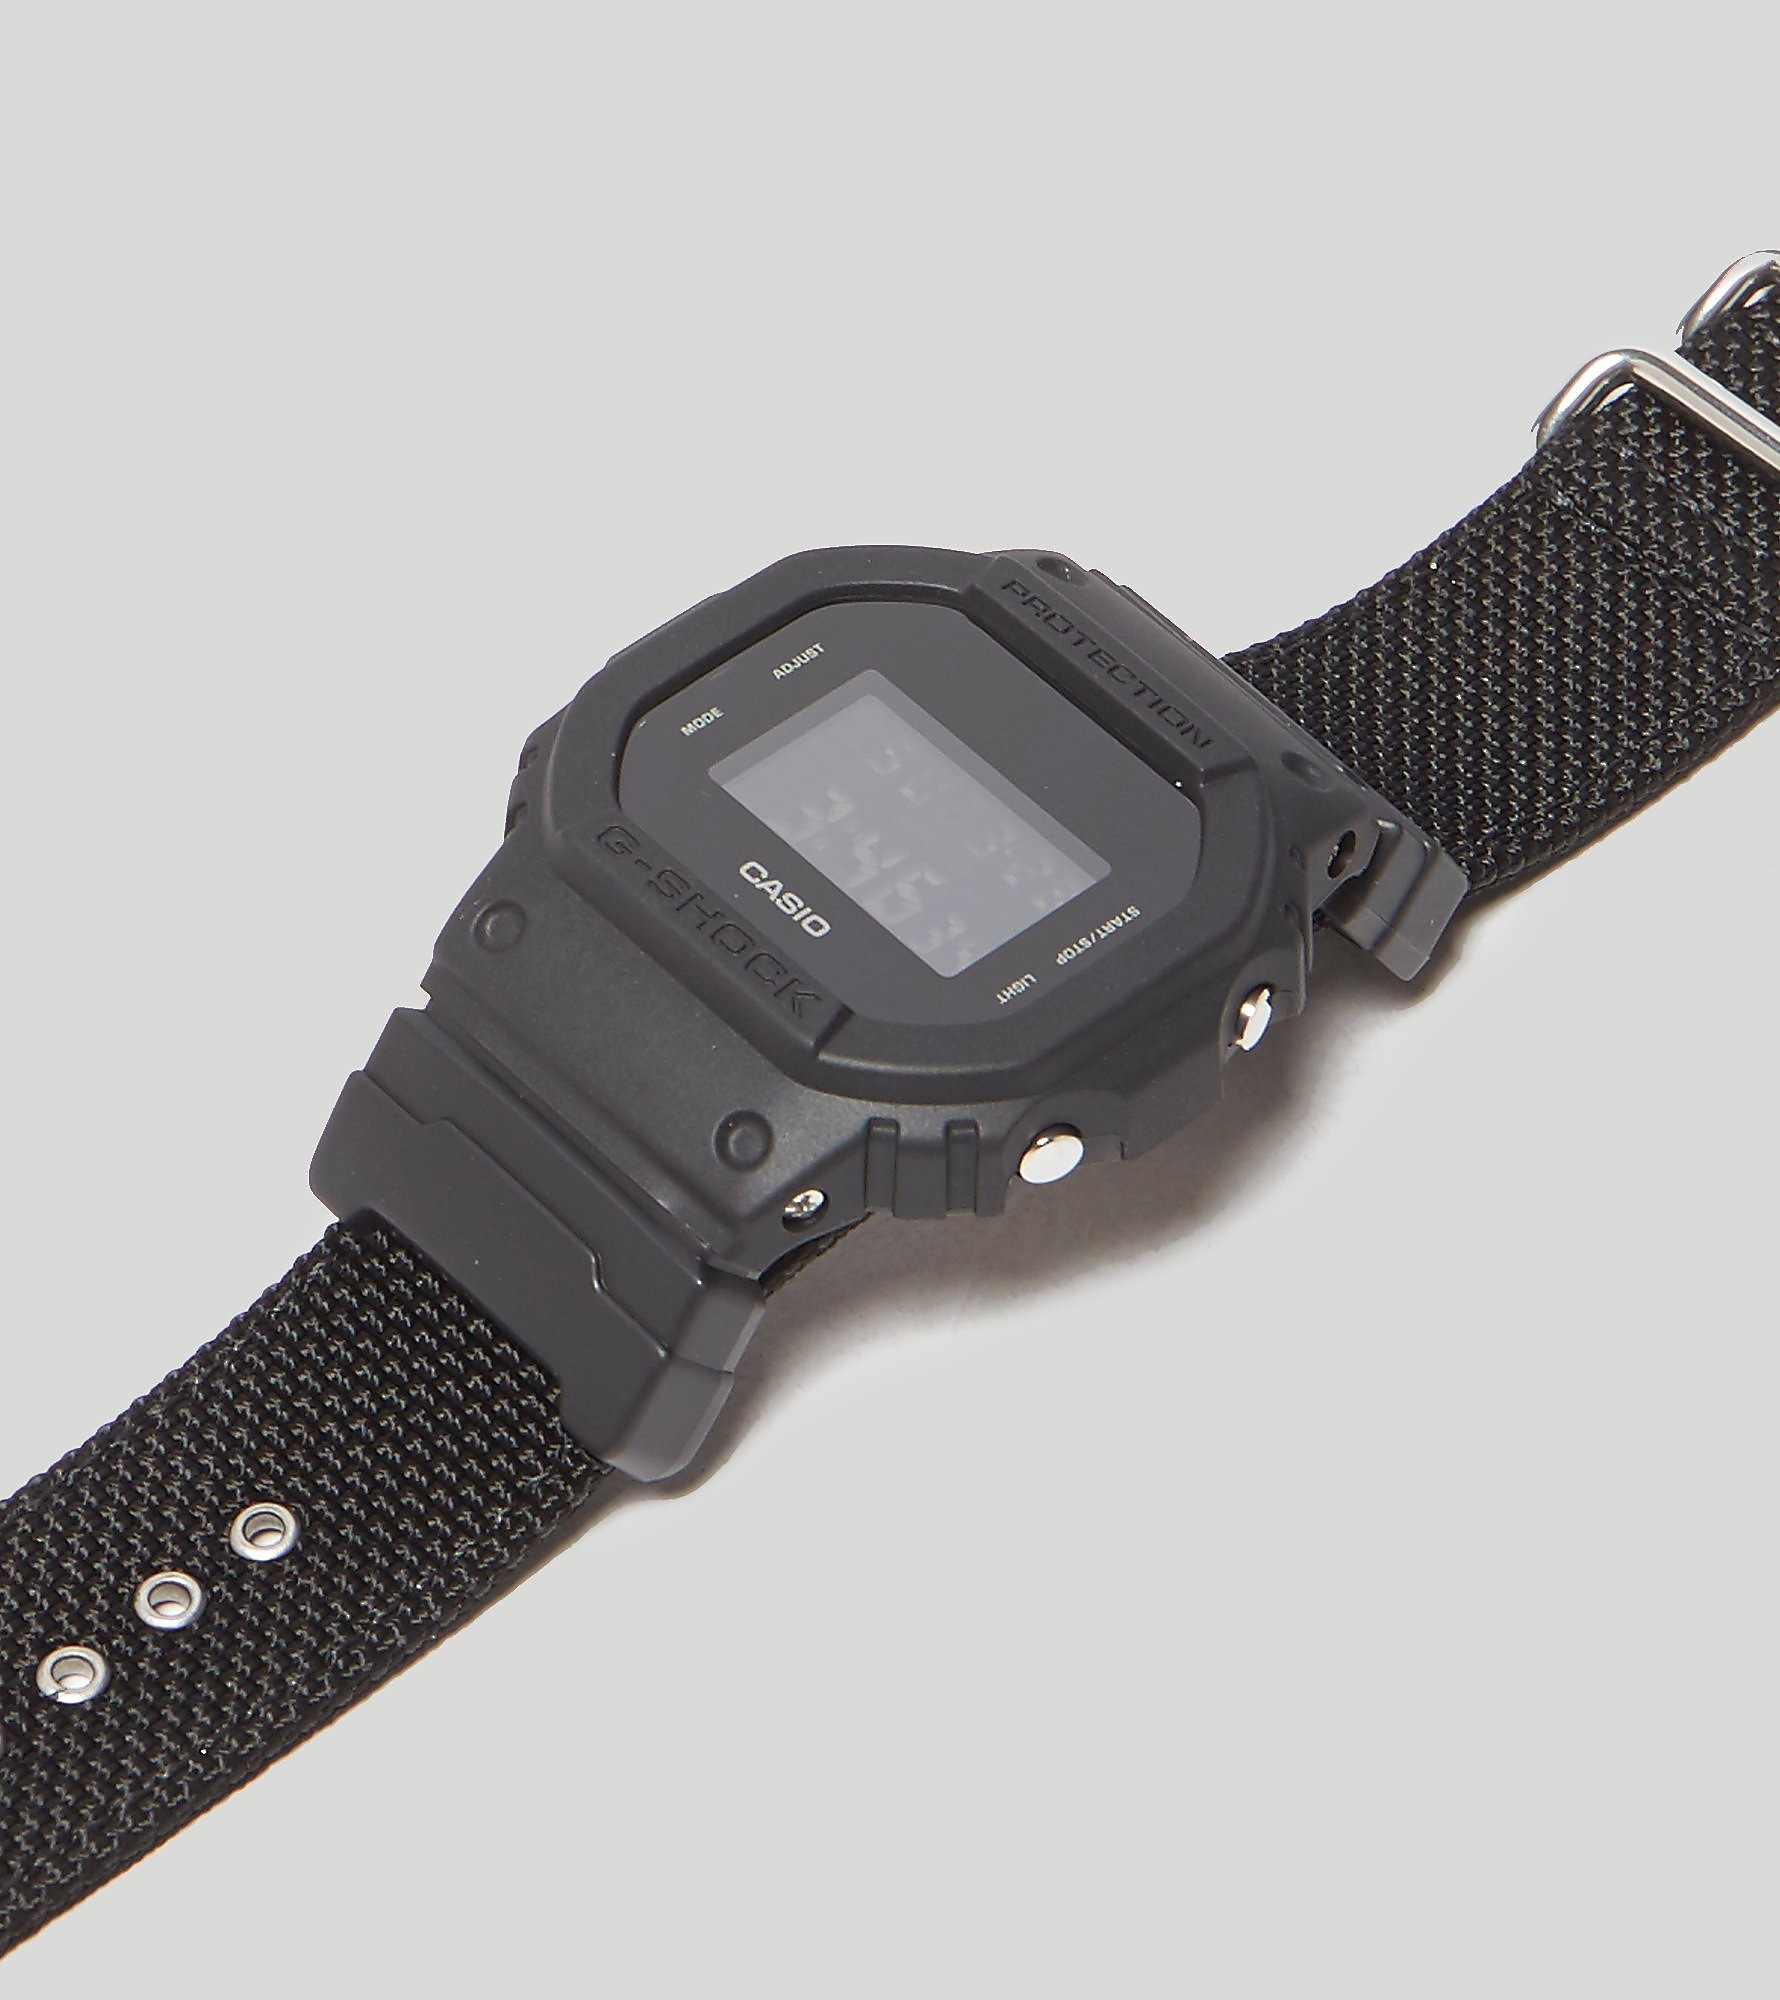 G-Shock DW-5600BBN Watch